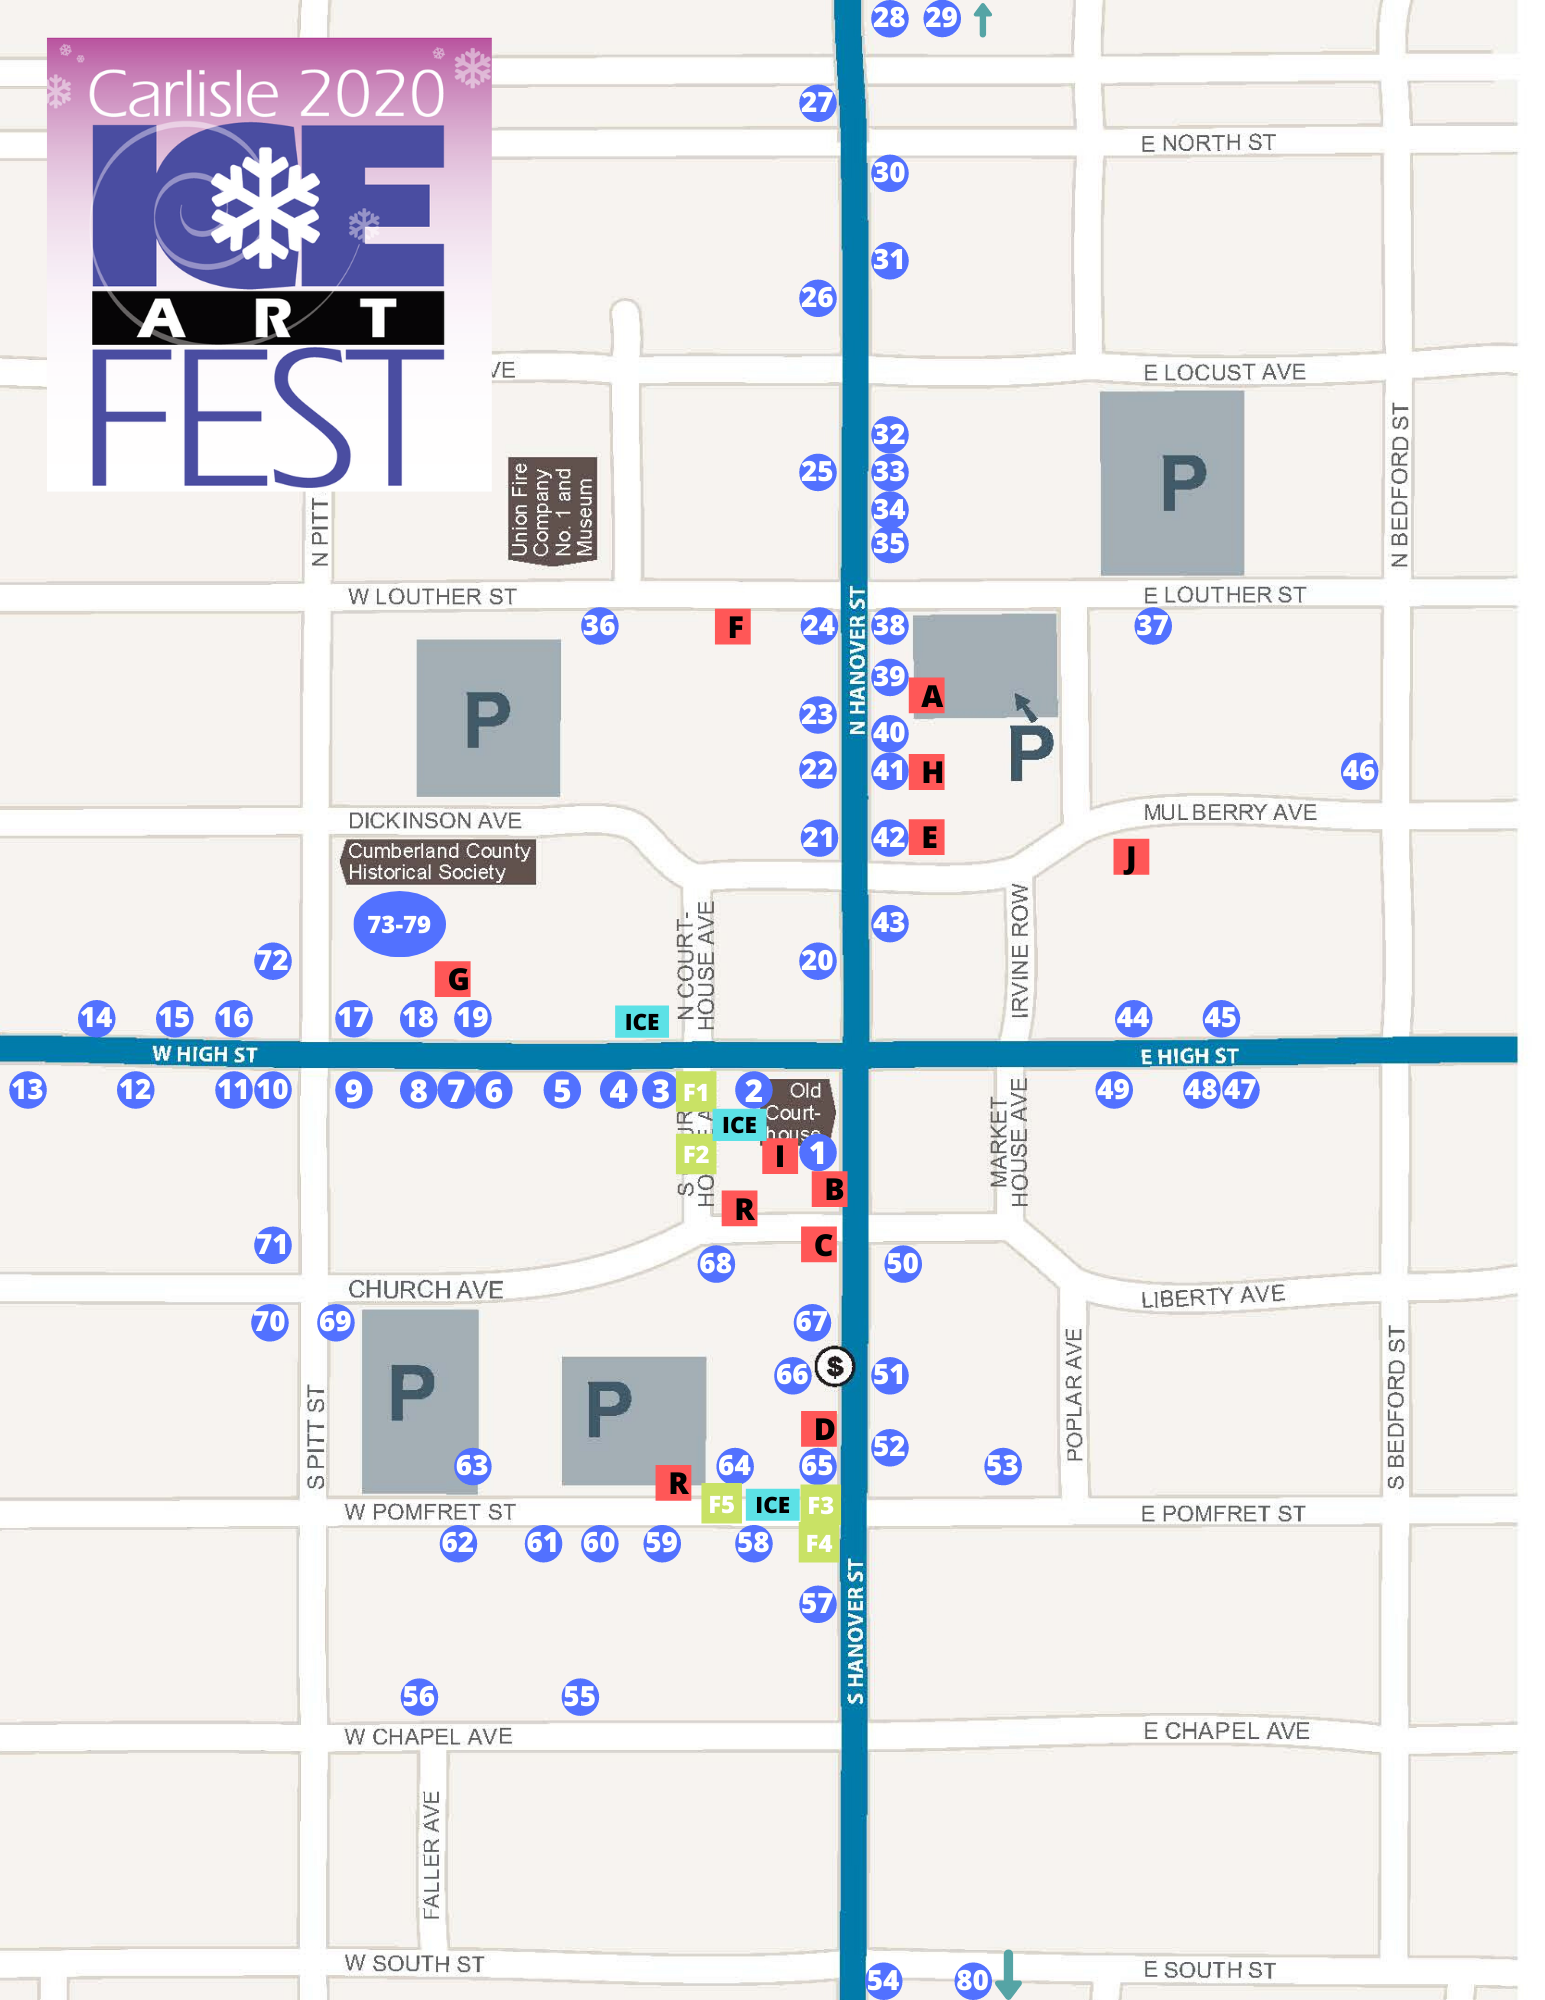 Map of the 2020 UPMC Carlisle Ice Art Fest